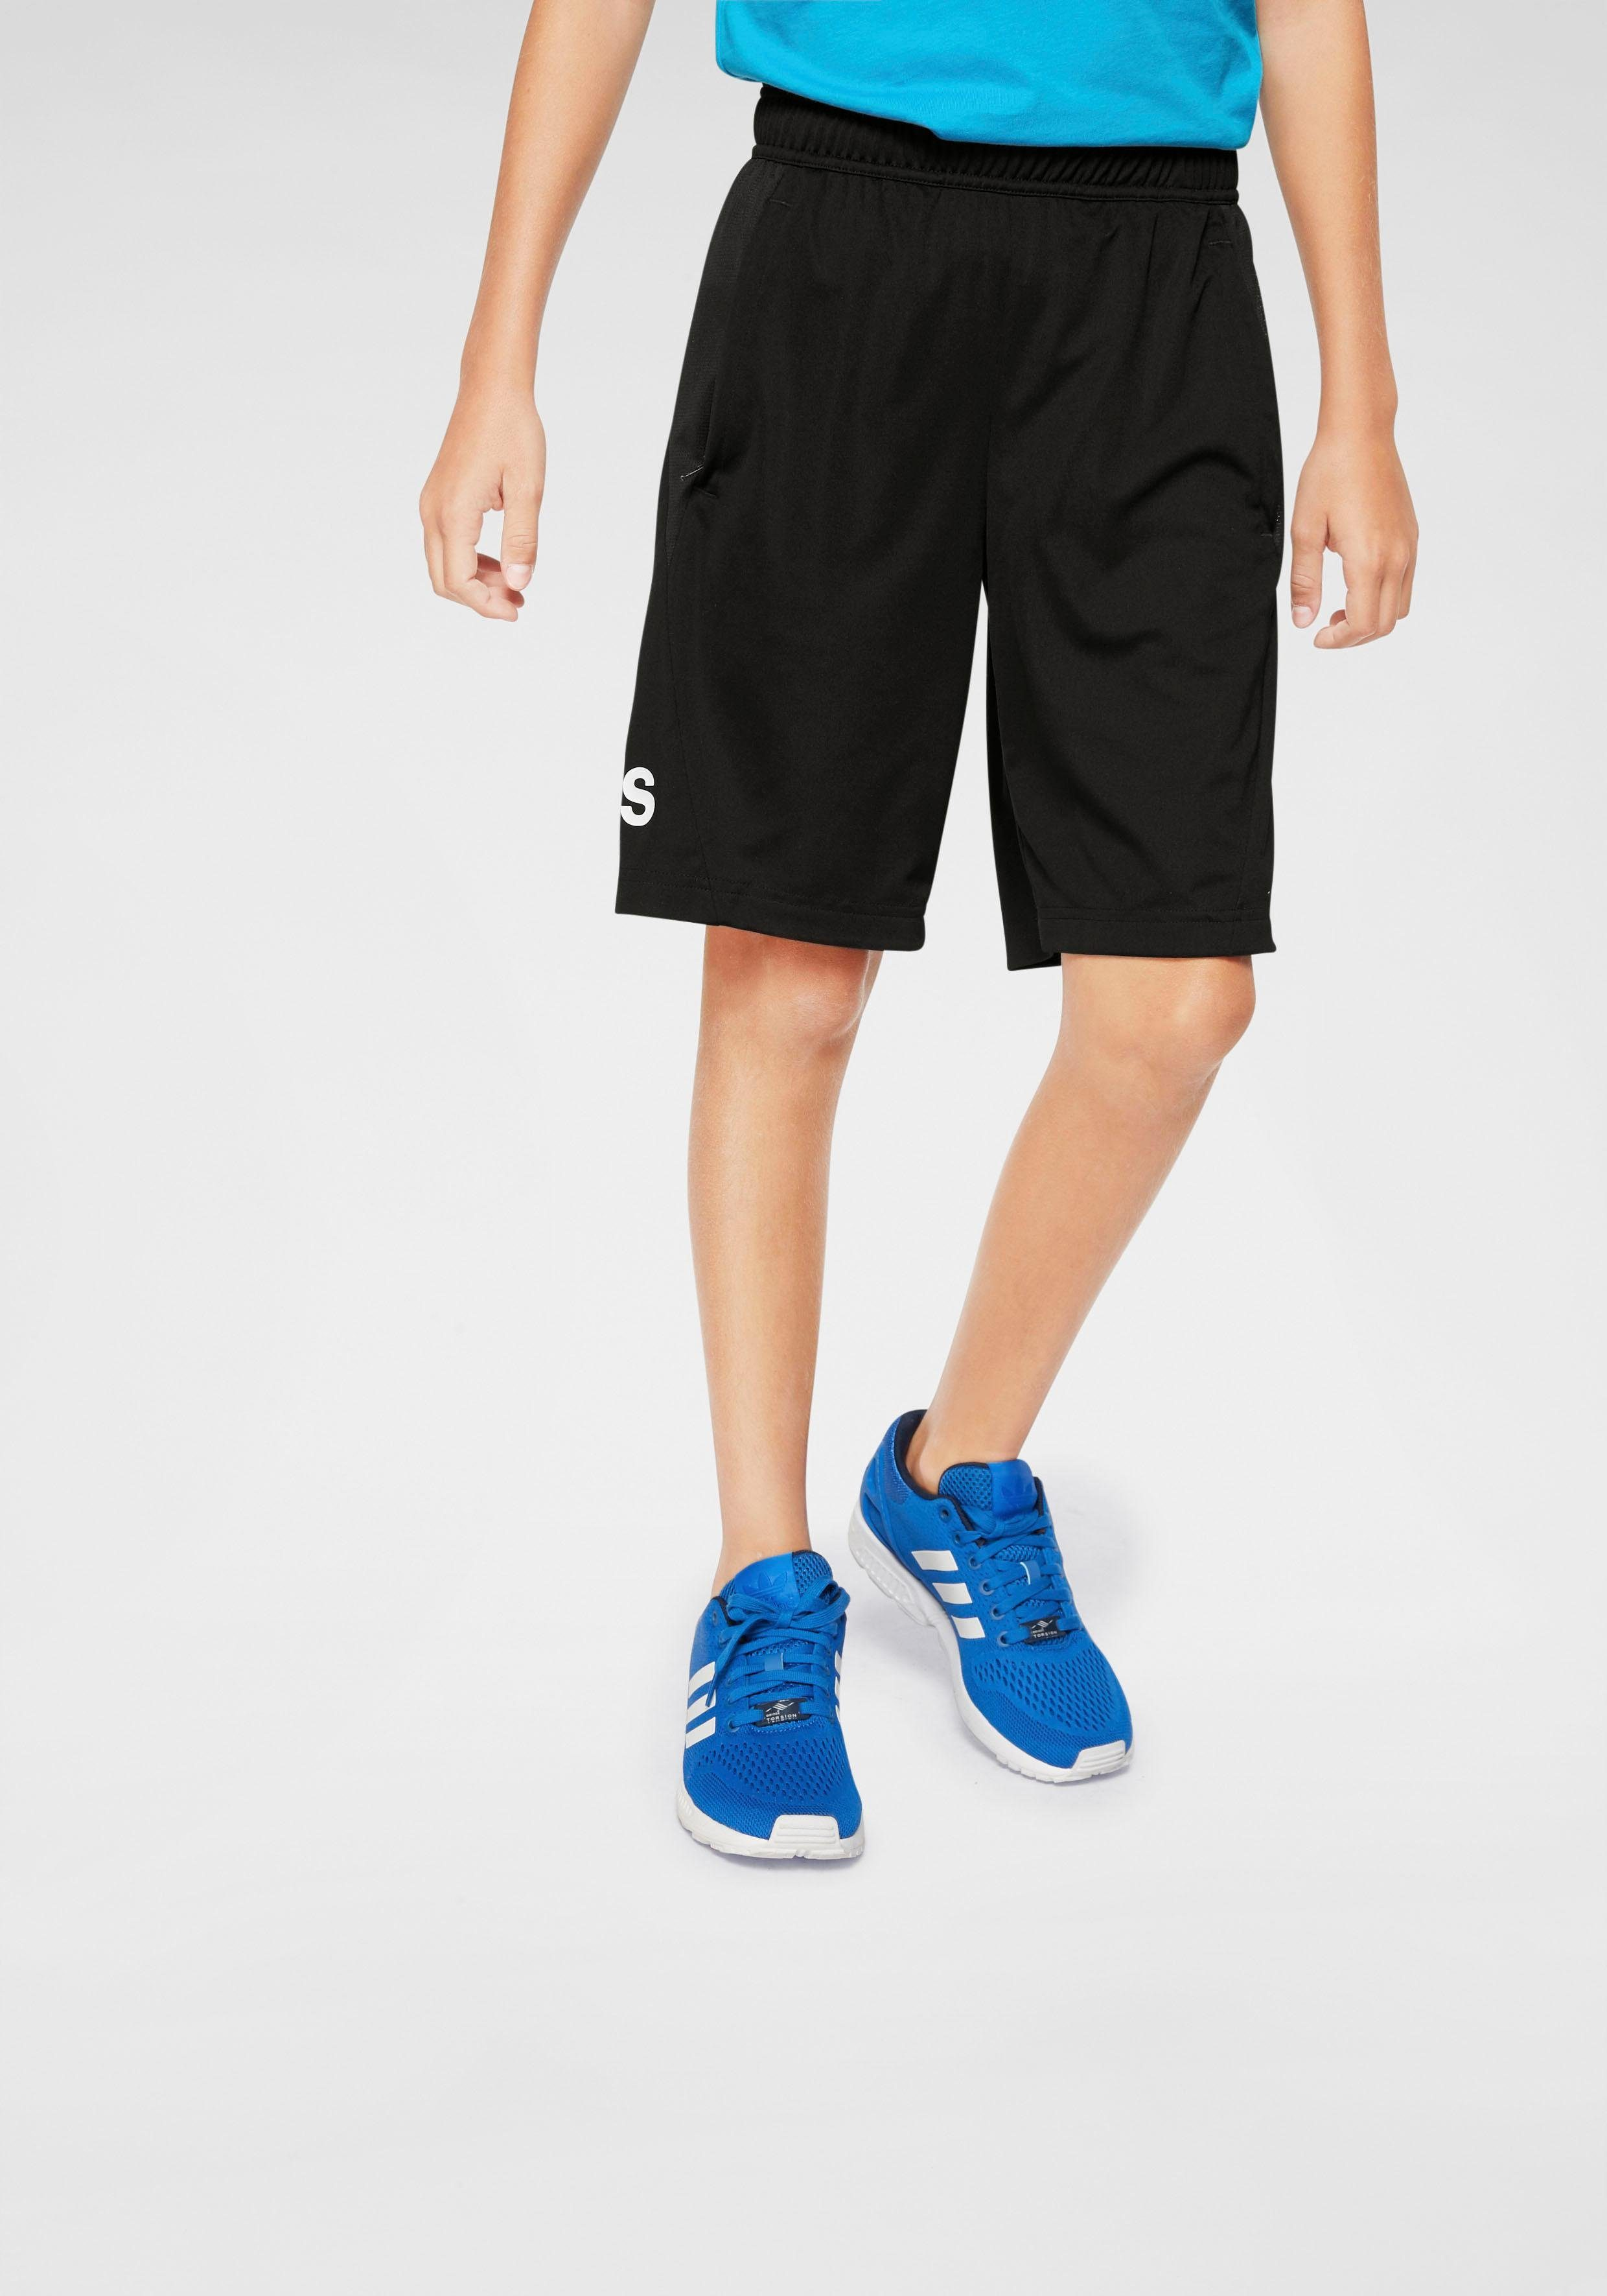 adidas Performance Trainingsshorts »YOUNG BOY TRAINING EQUIPMENT KNIT SHORTS« online kaufen | OTTO